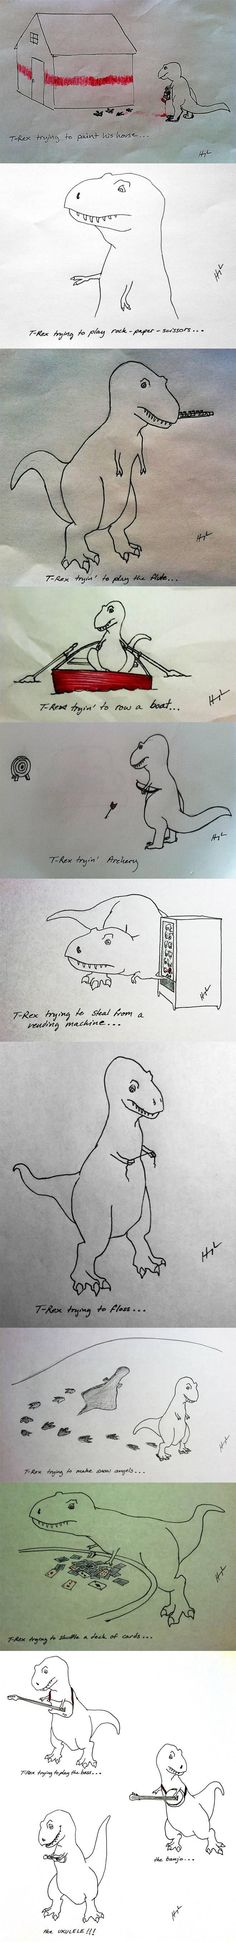 T-Rex trying to do many things